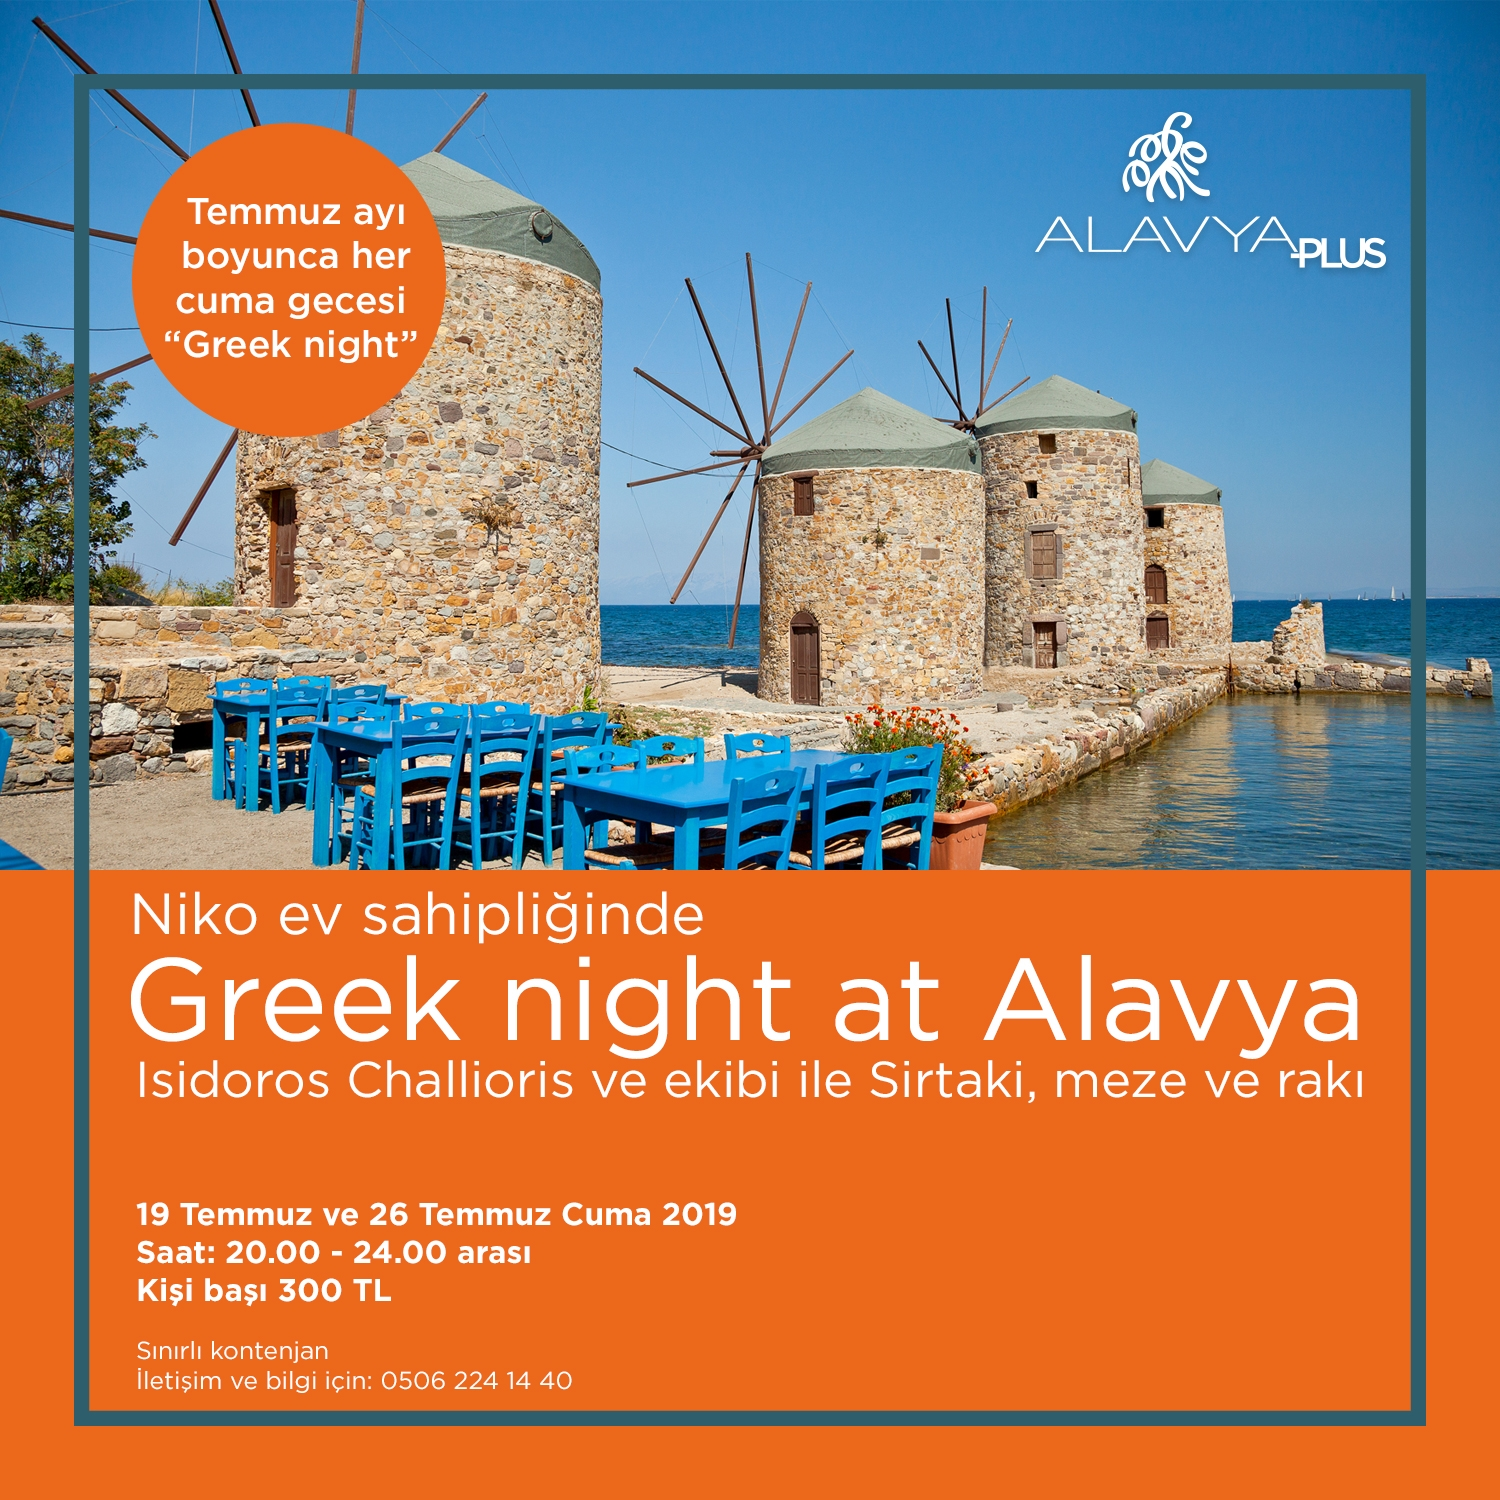 Niko ev sahipliğinde Greek night at Alavya